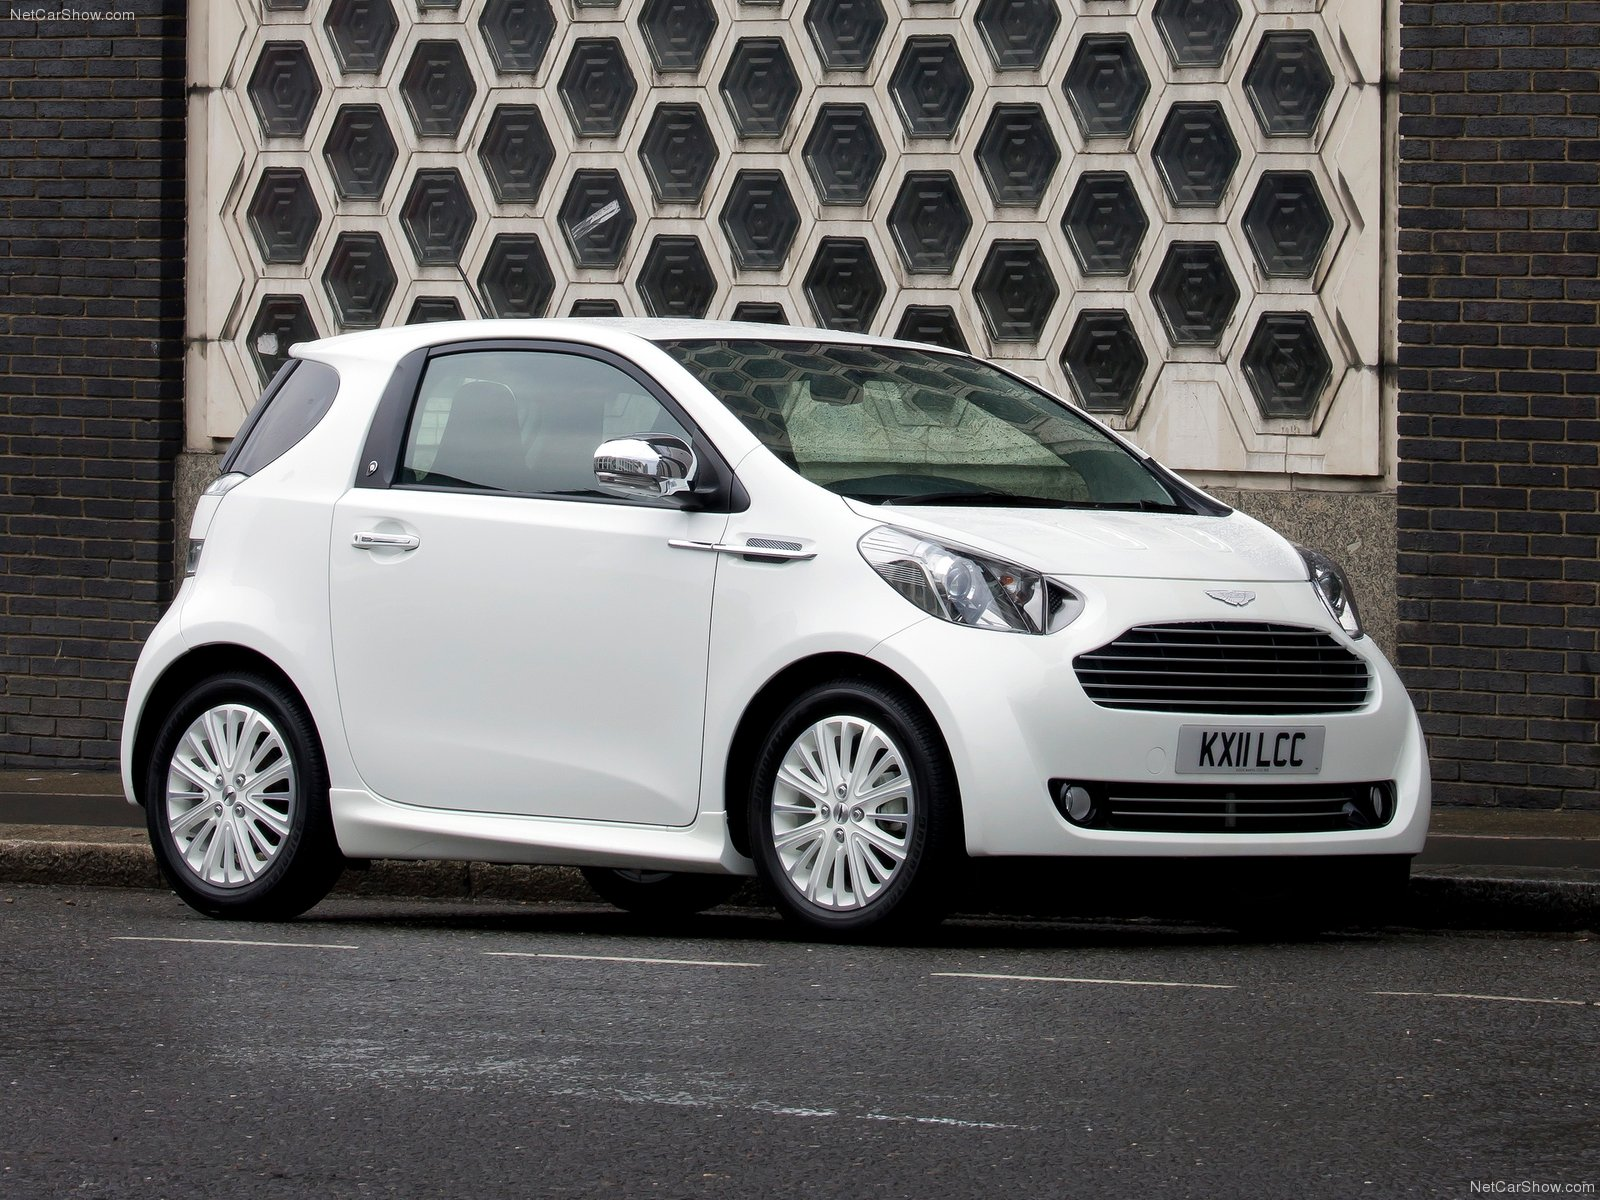 aston martin cygnet photos - photogallery with 26 pics| carsbase